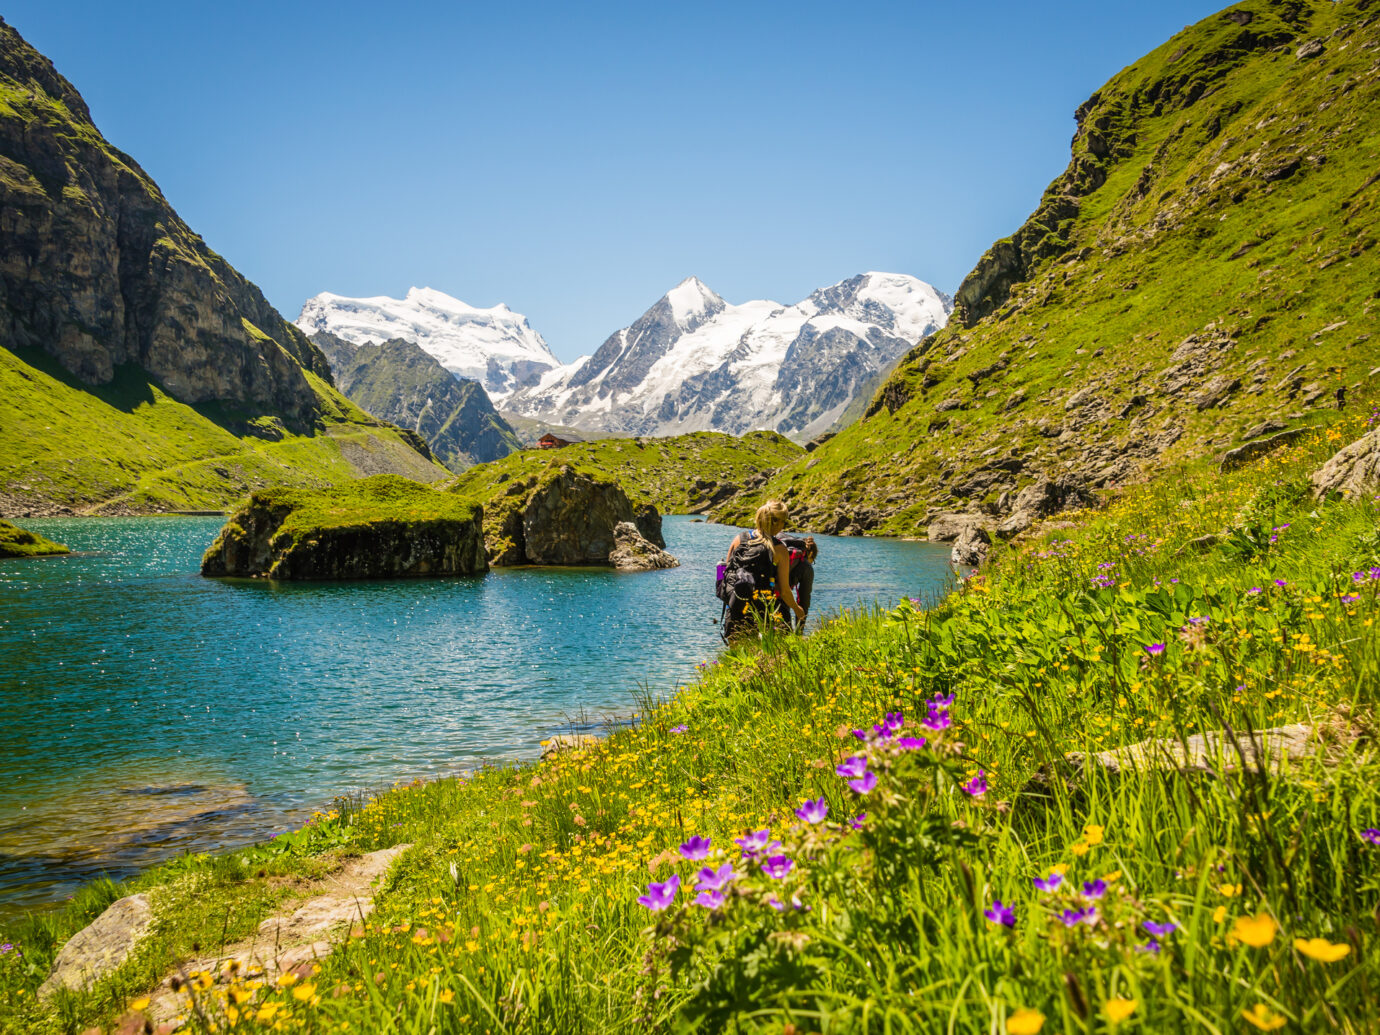 A hiking path beside the famous Lac Louvie near the Swiss town of Verbier.